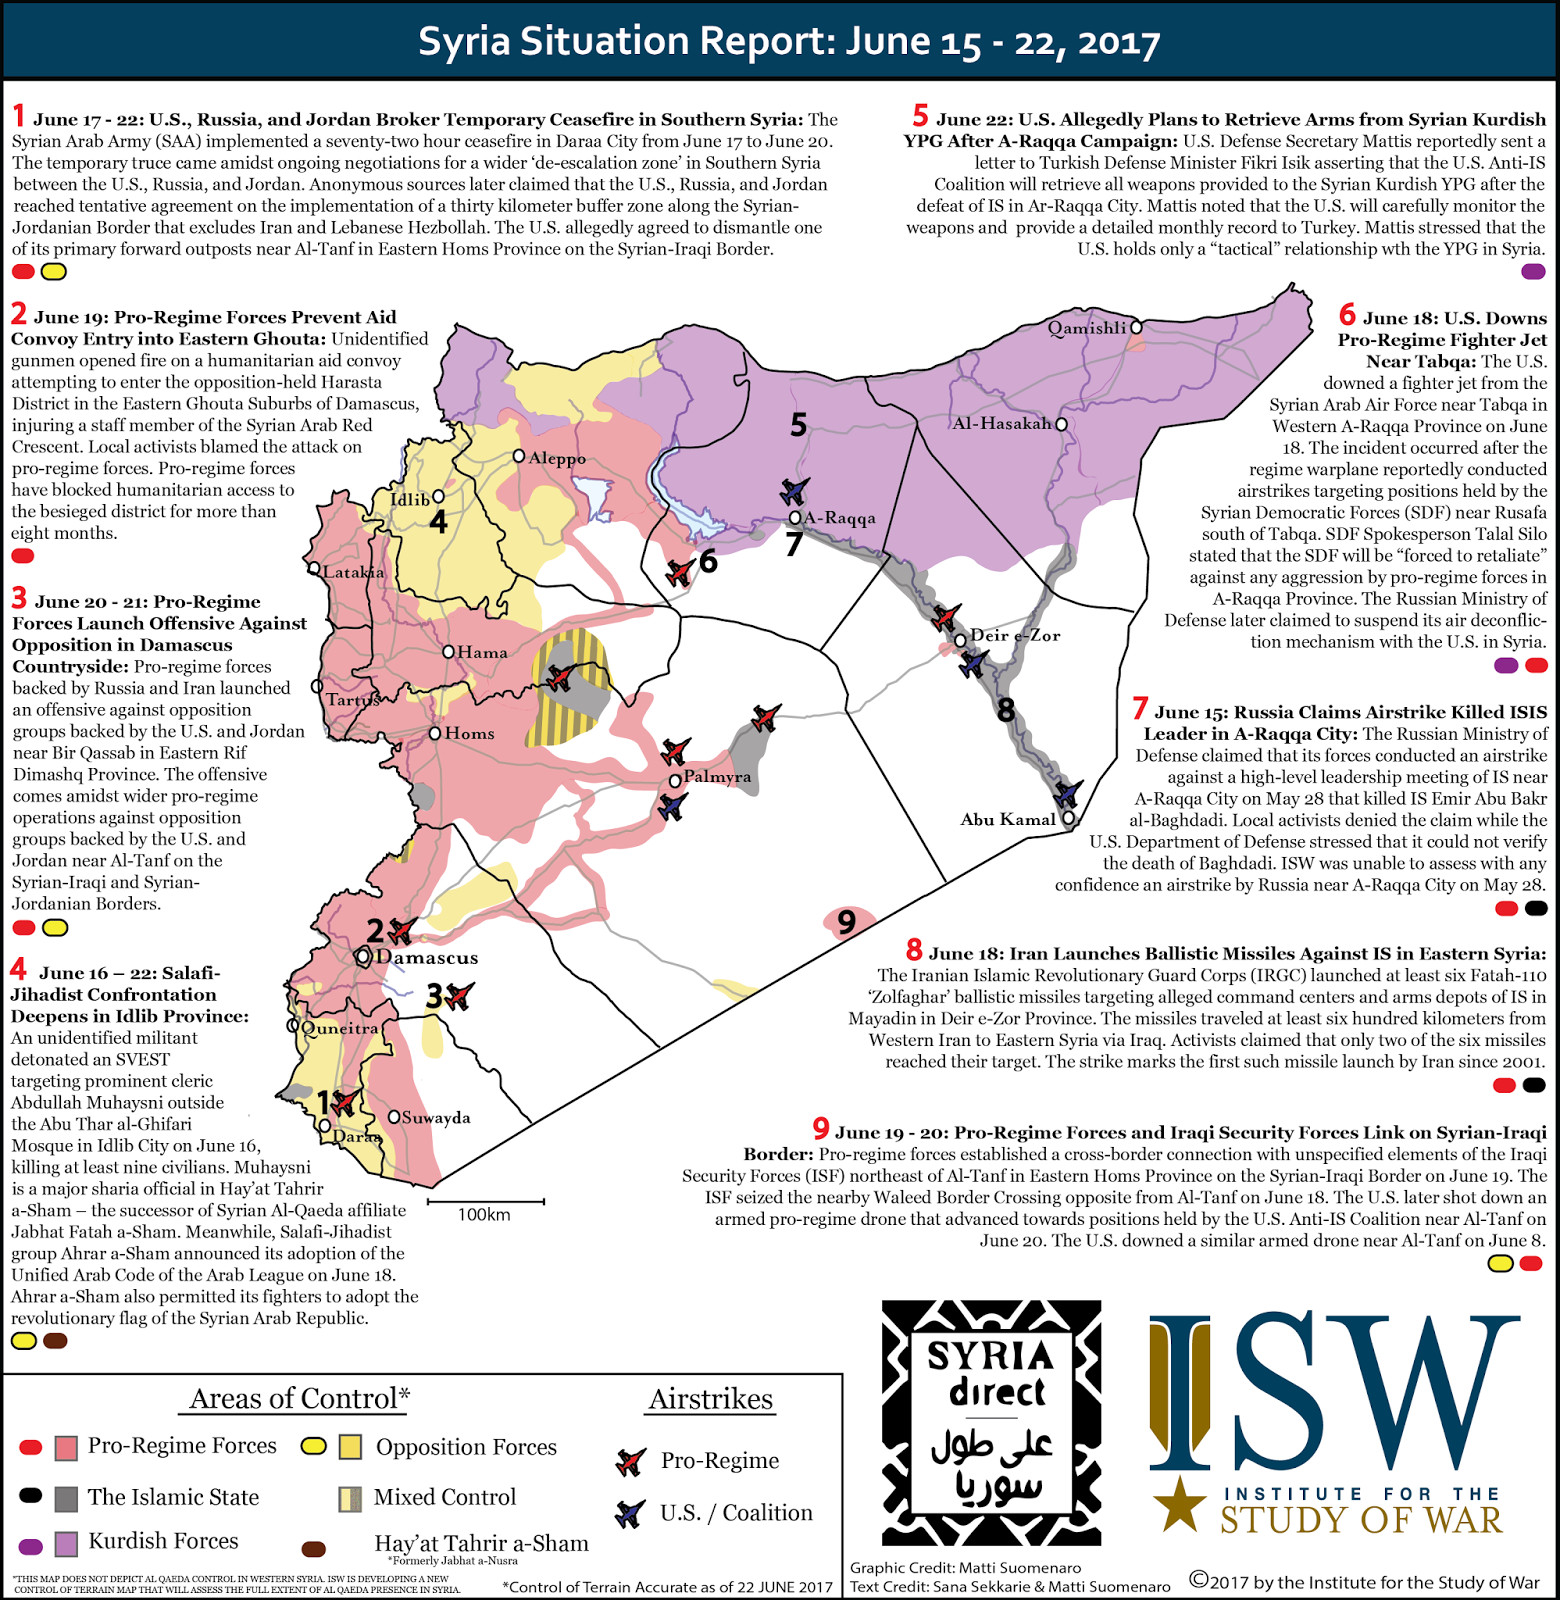 Syria Situation Report: June 7 - 29, 2017